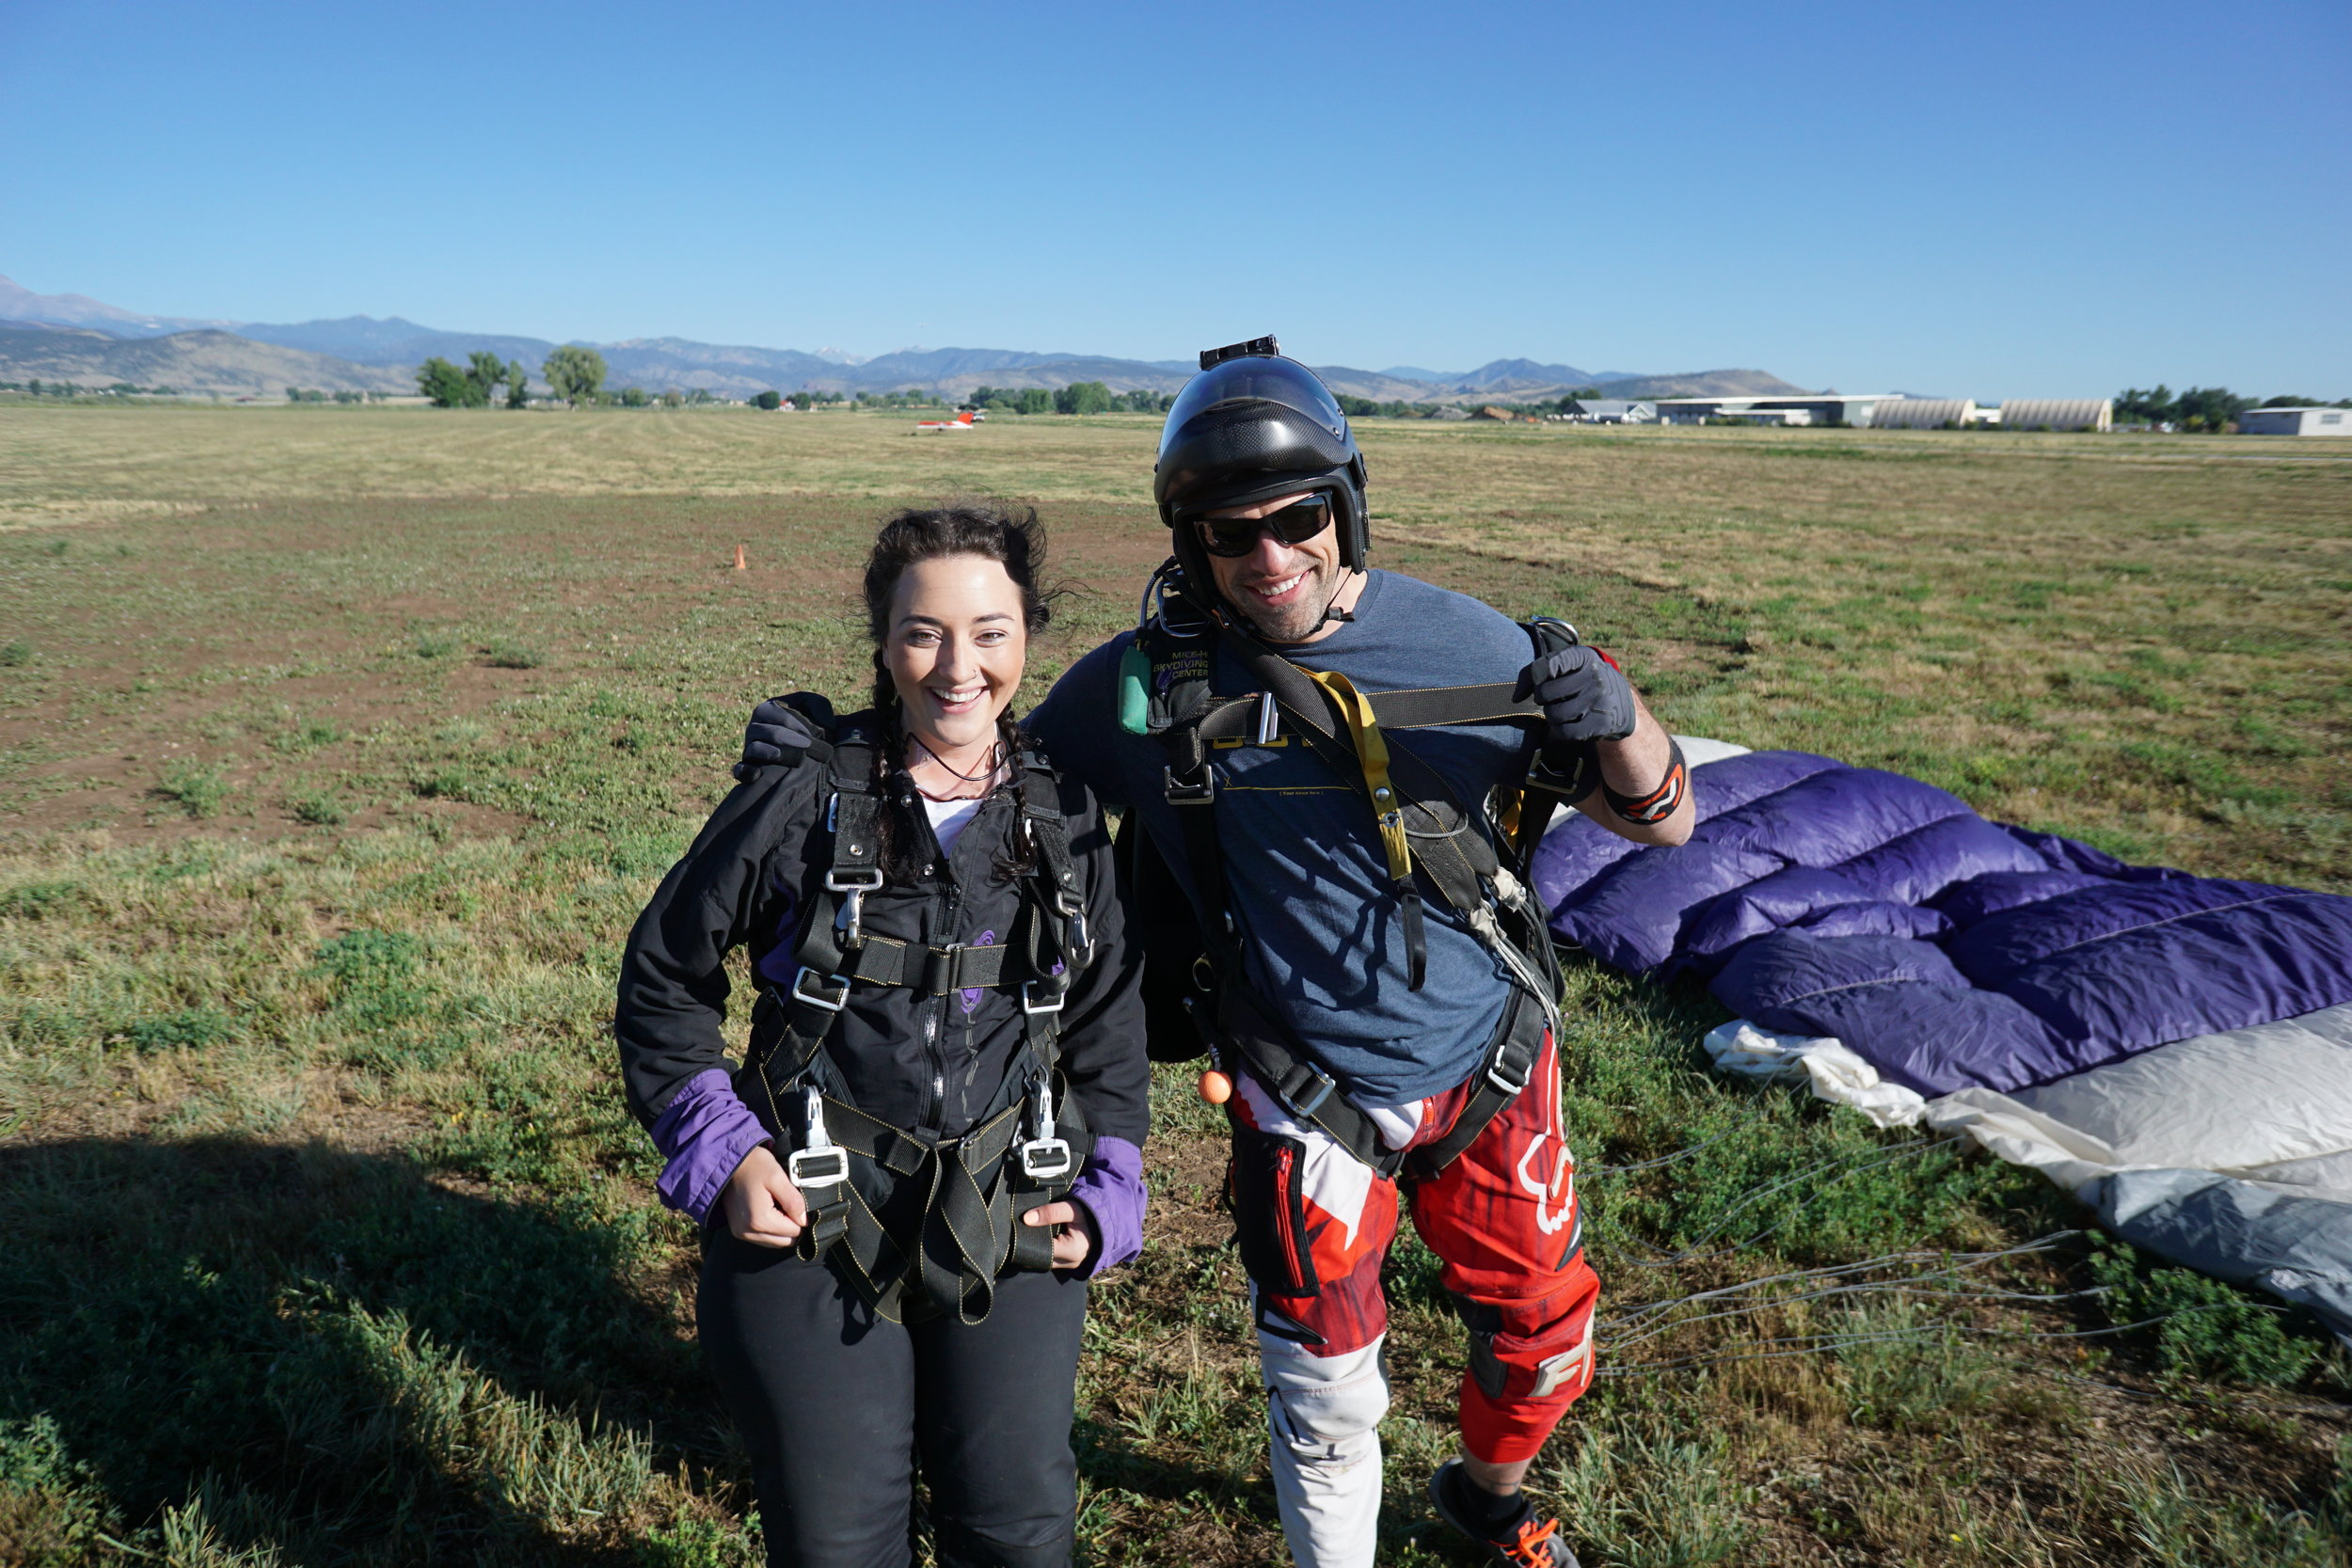 Thank you to my tandem instructor and all the folks at Mile-Hi Skydiving for an amazing first experience with skydiving!